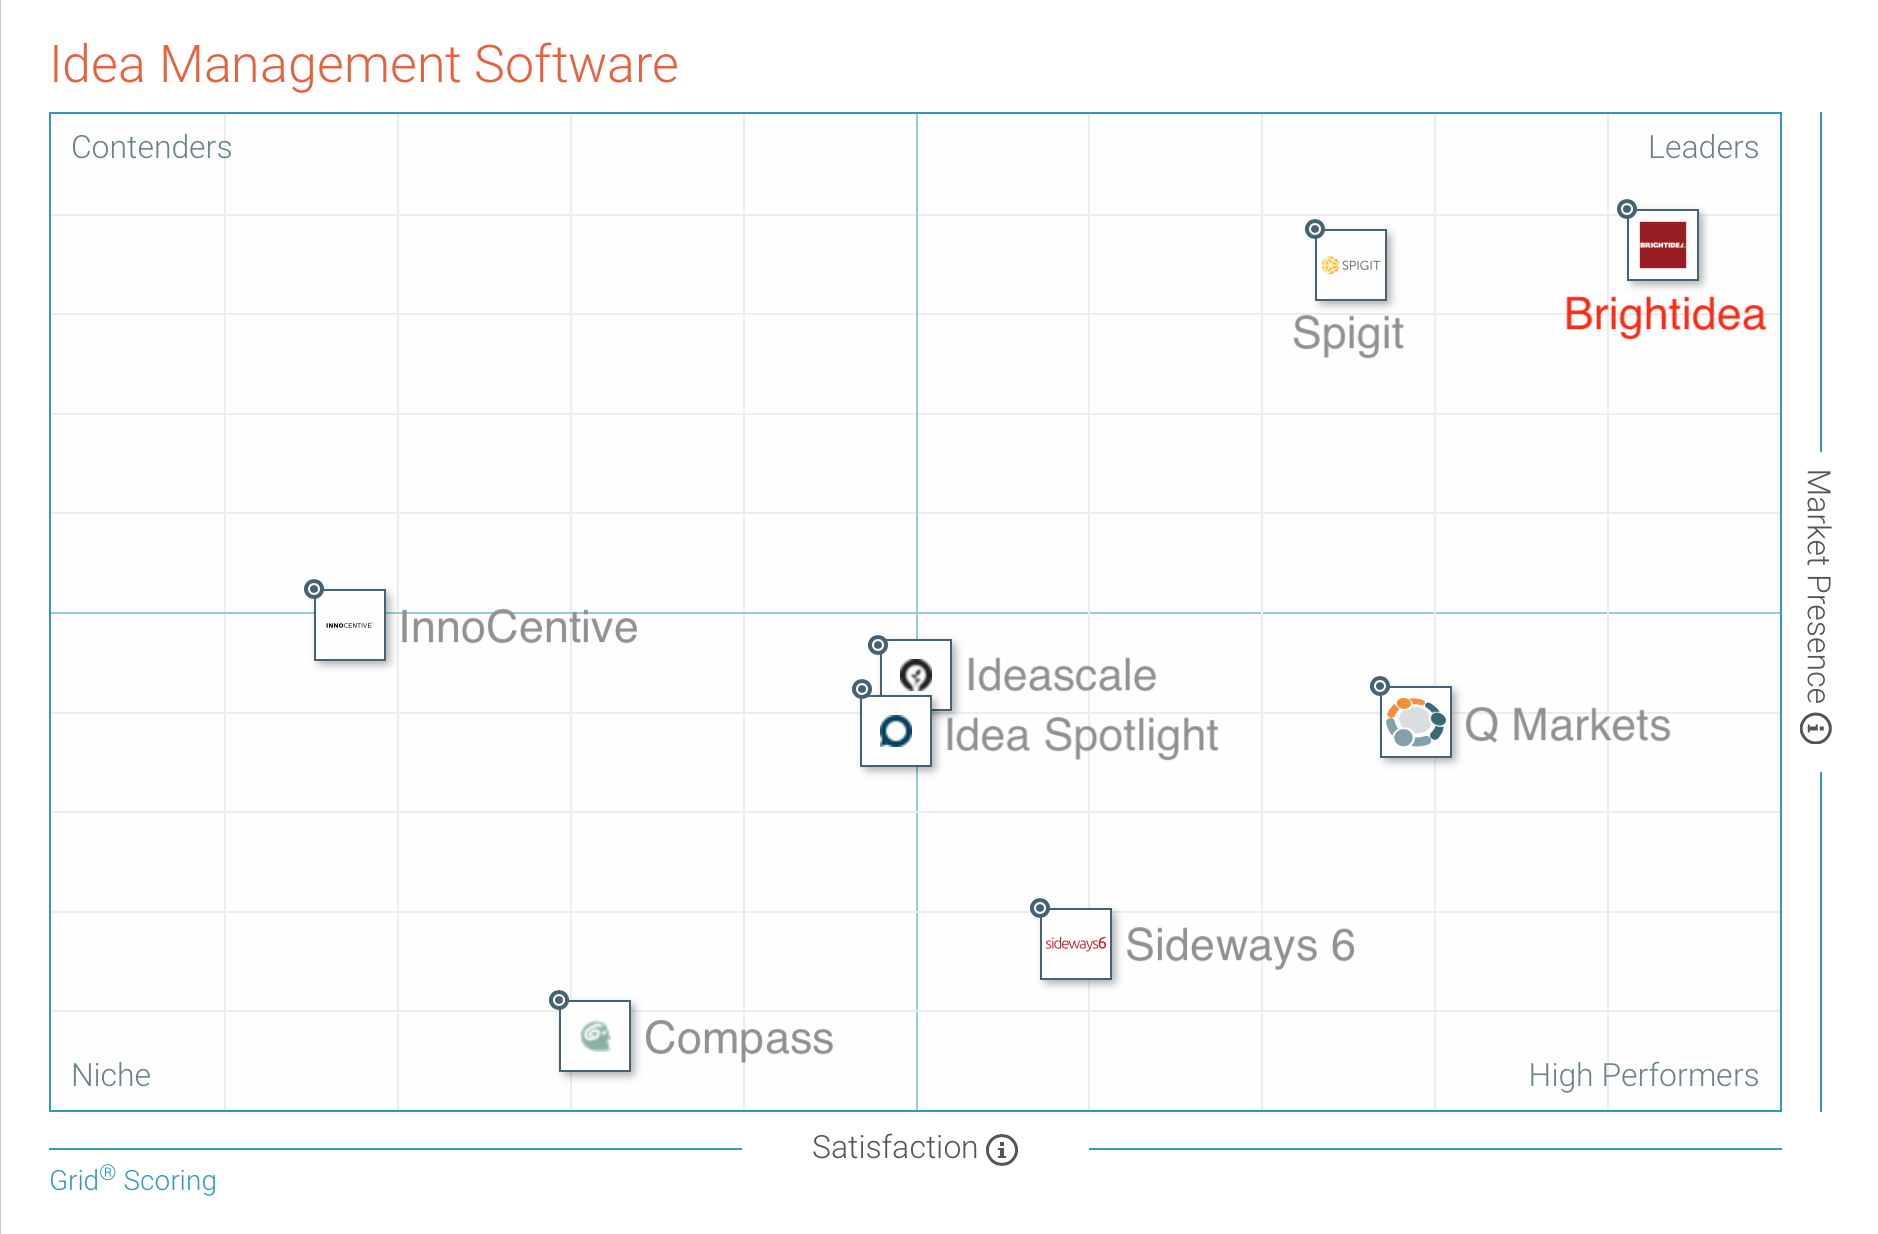 Brightidea G2Crowd Innovation Management Software Grid